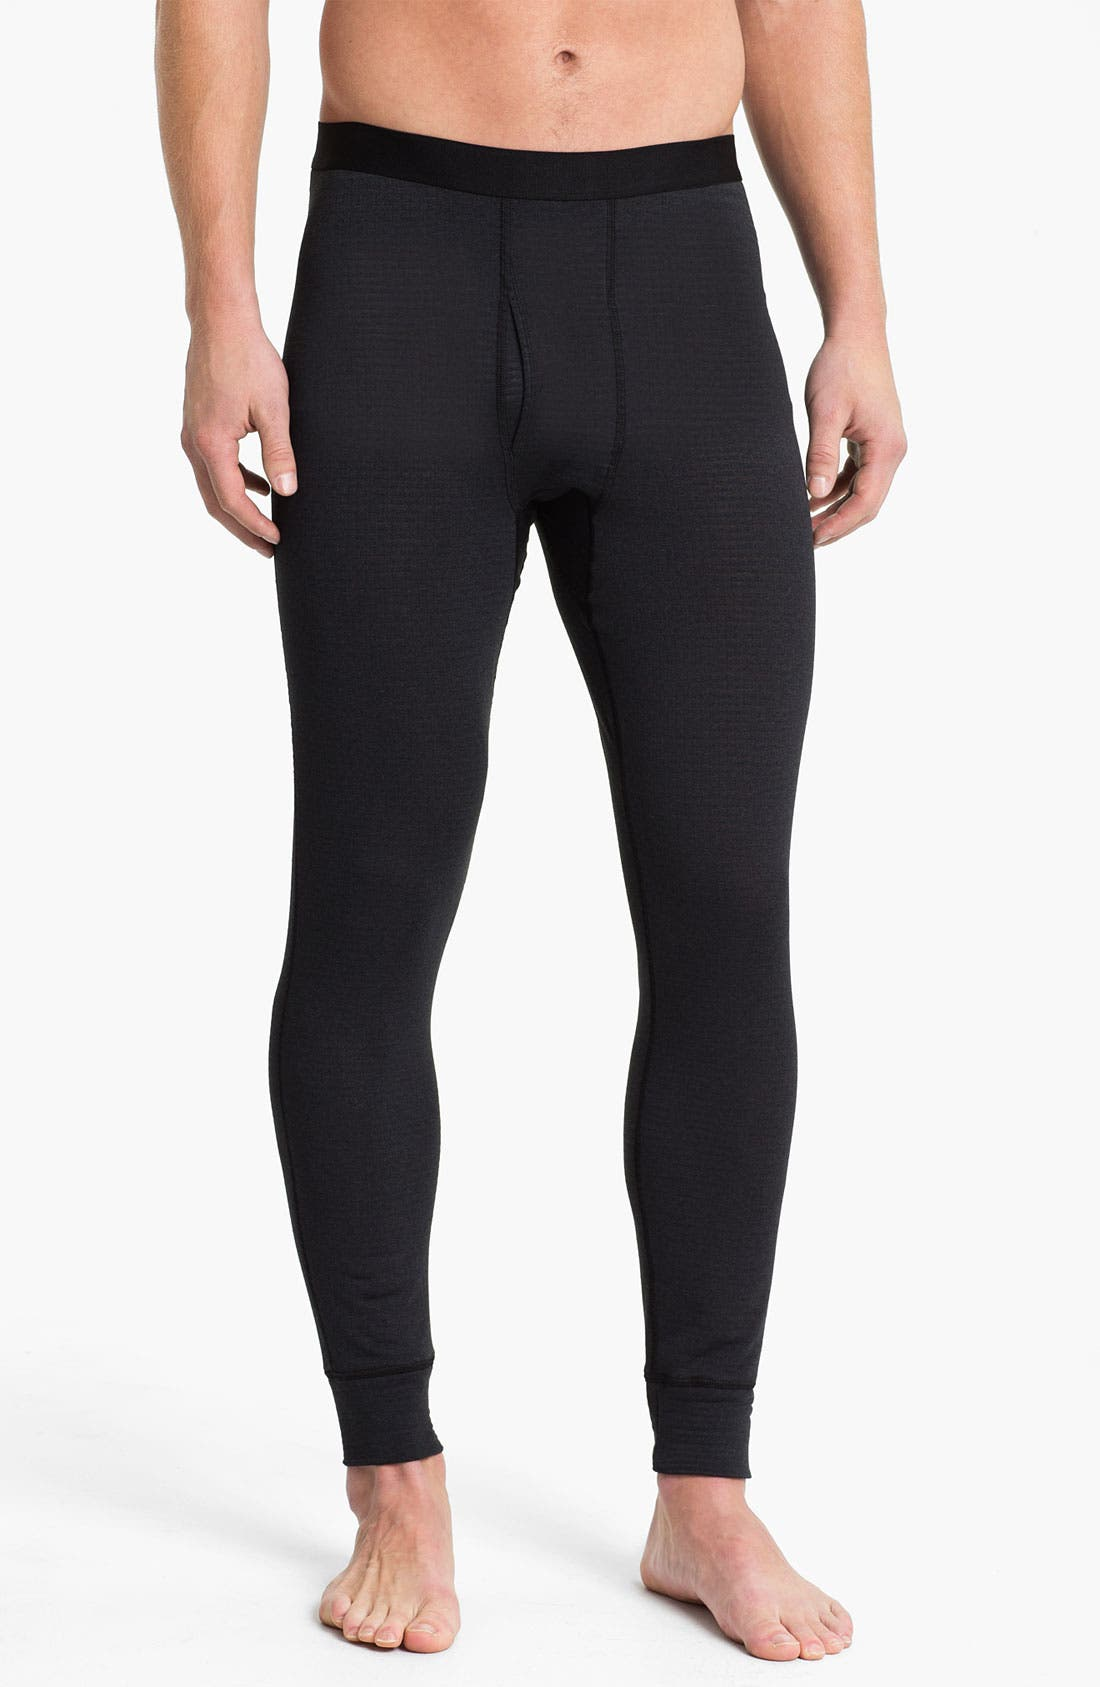 'Capilene<sup>®</sup> 4' Expedition Weight Base Layer Pants,                             Main thumbnail 1, color,                             Black